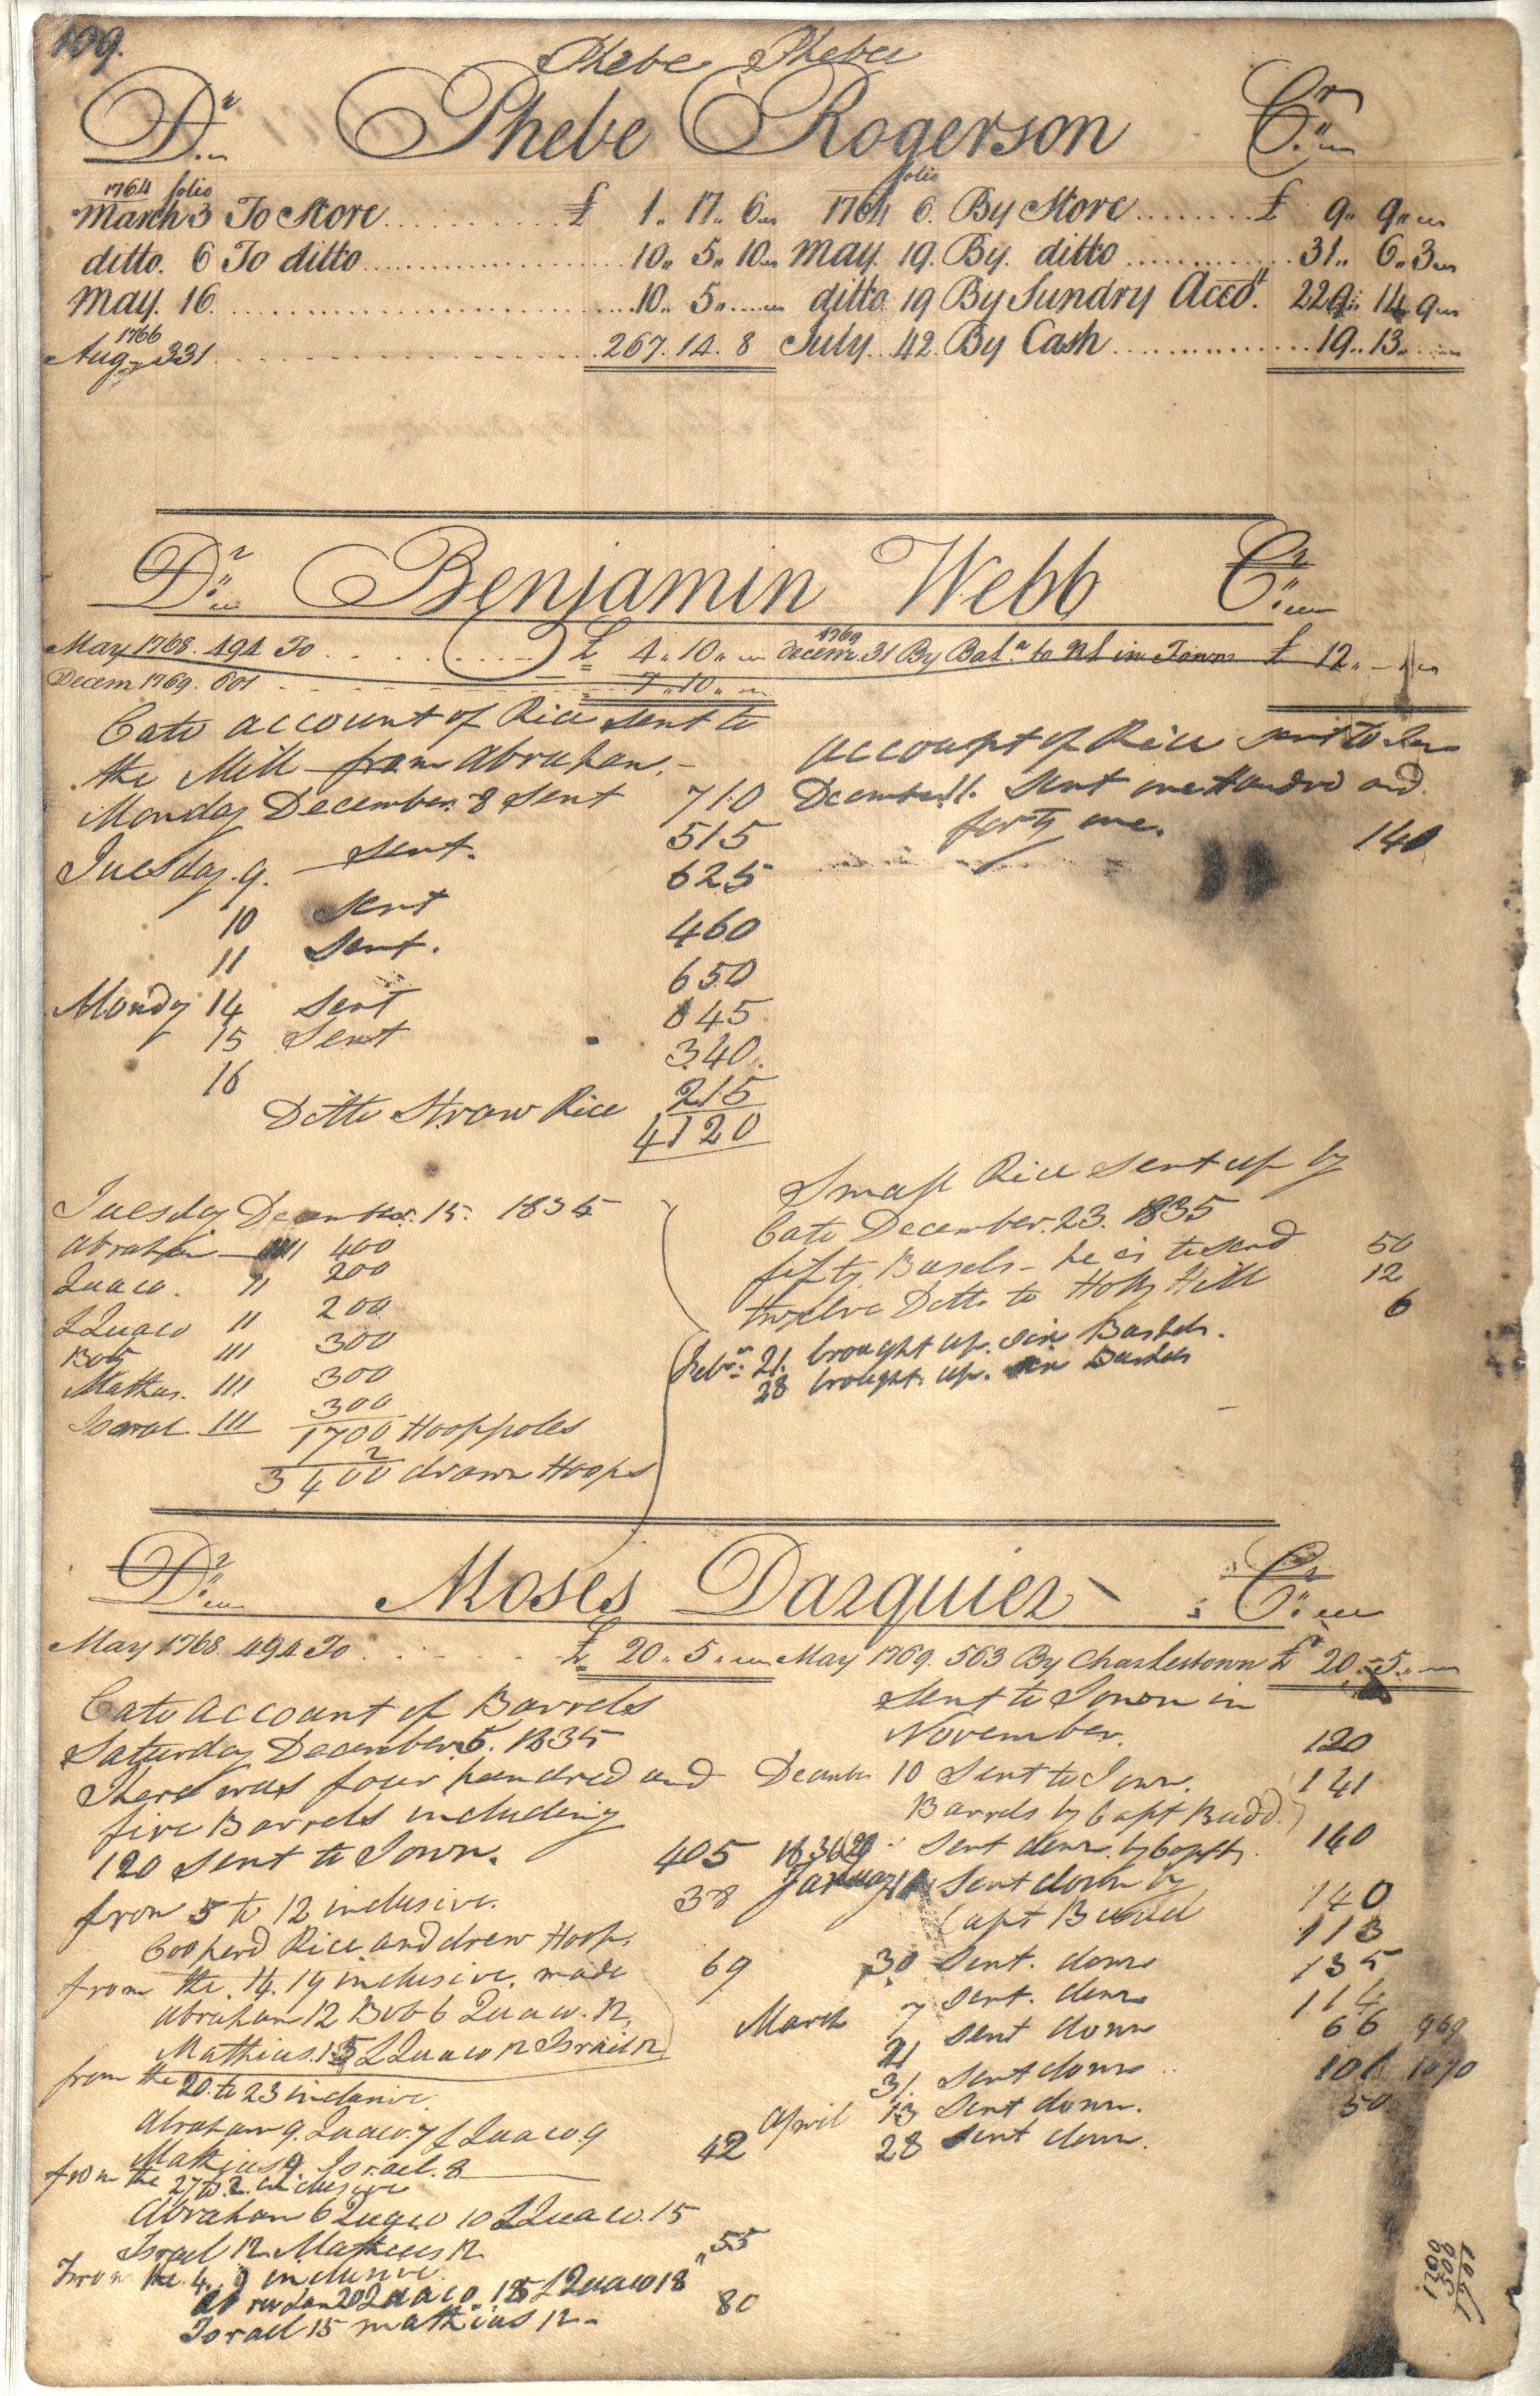 Plowden Weston's Business Ledger, page 109